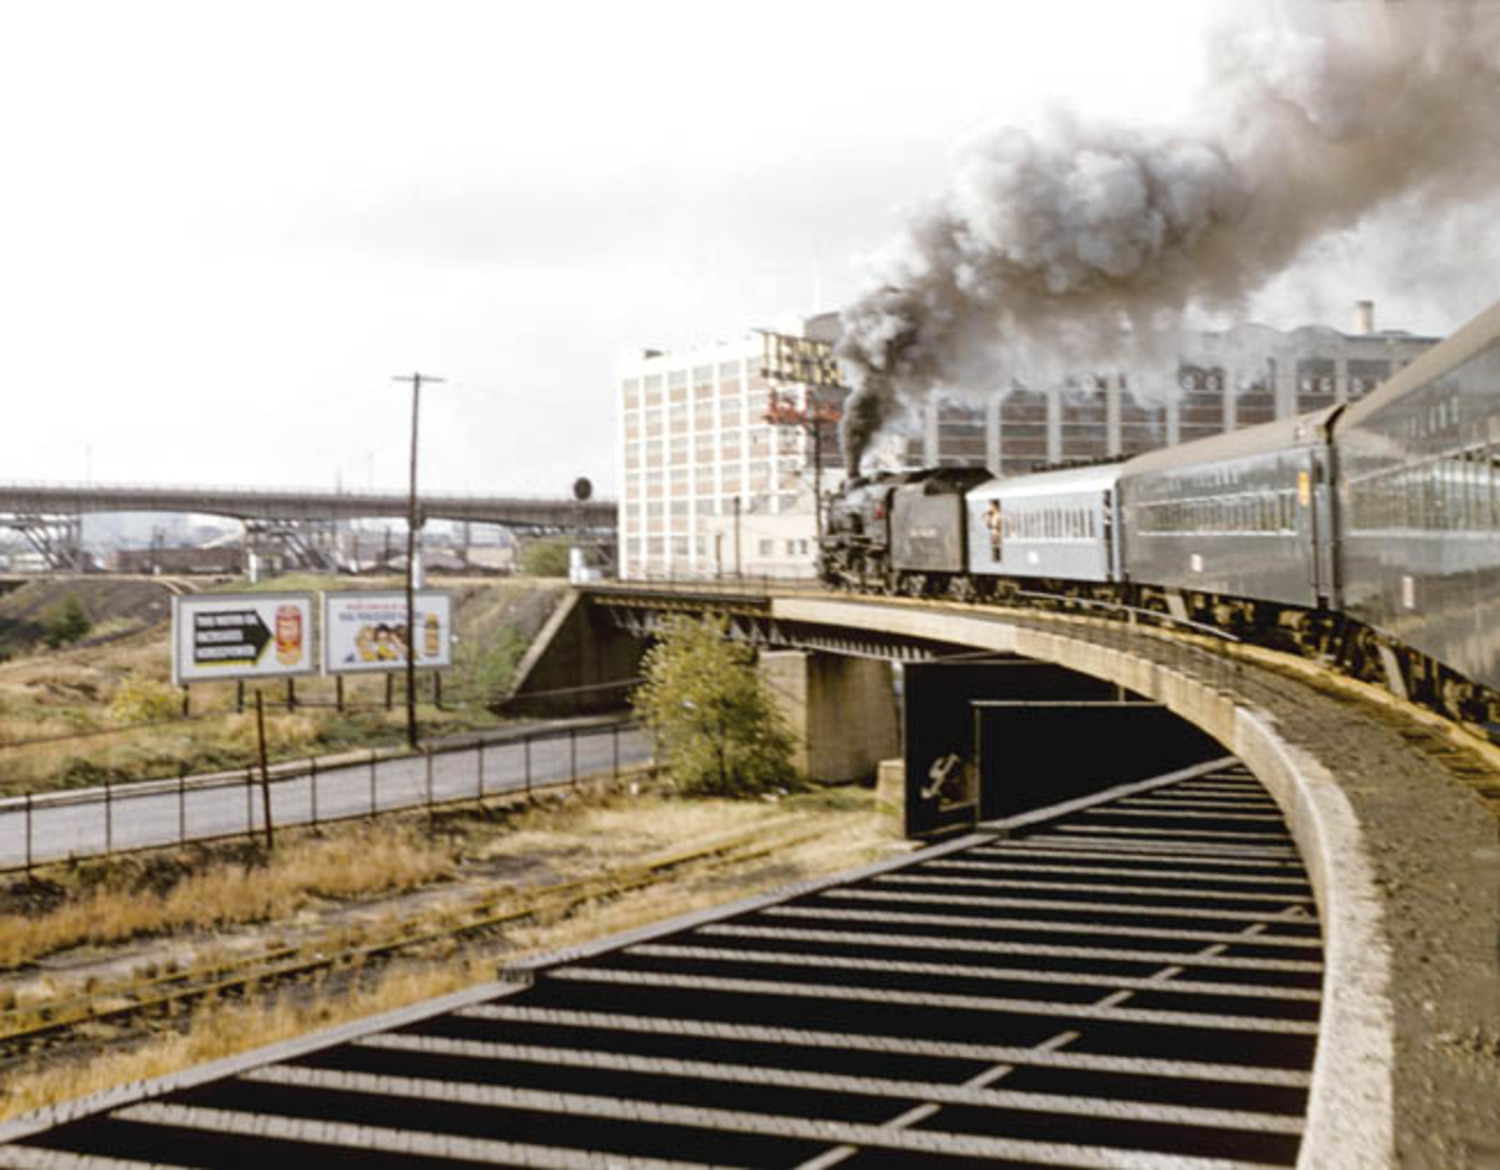 Final stream passenger train on Long Island – Photo by Art Huneke – view is looking southeast, Skillman avenue is in the foreground.